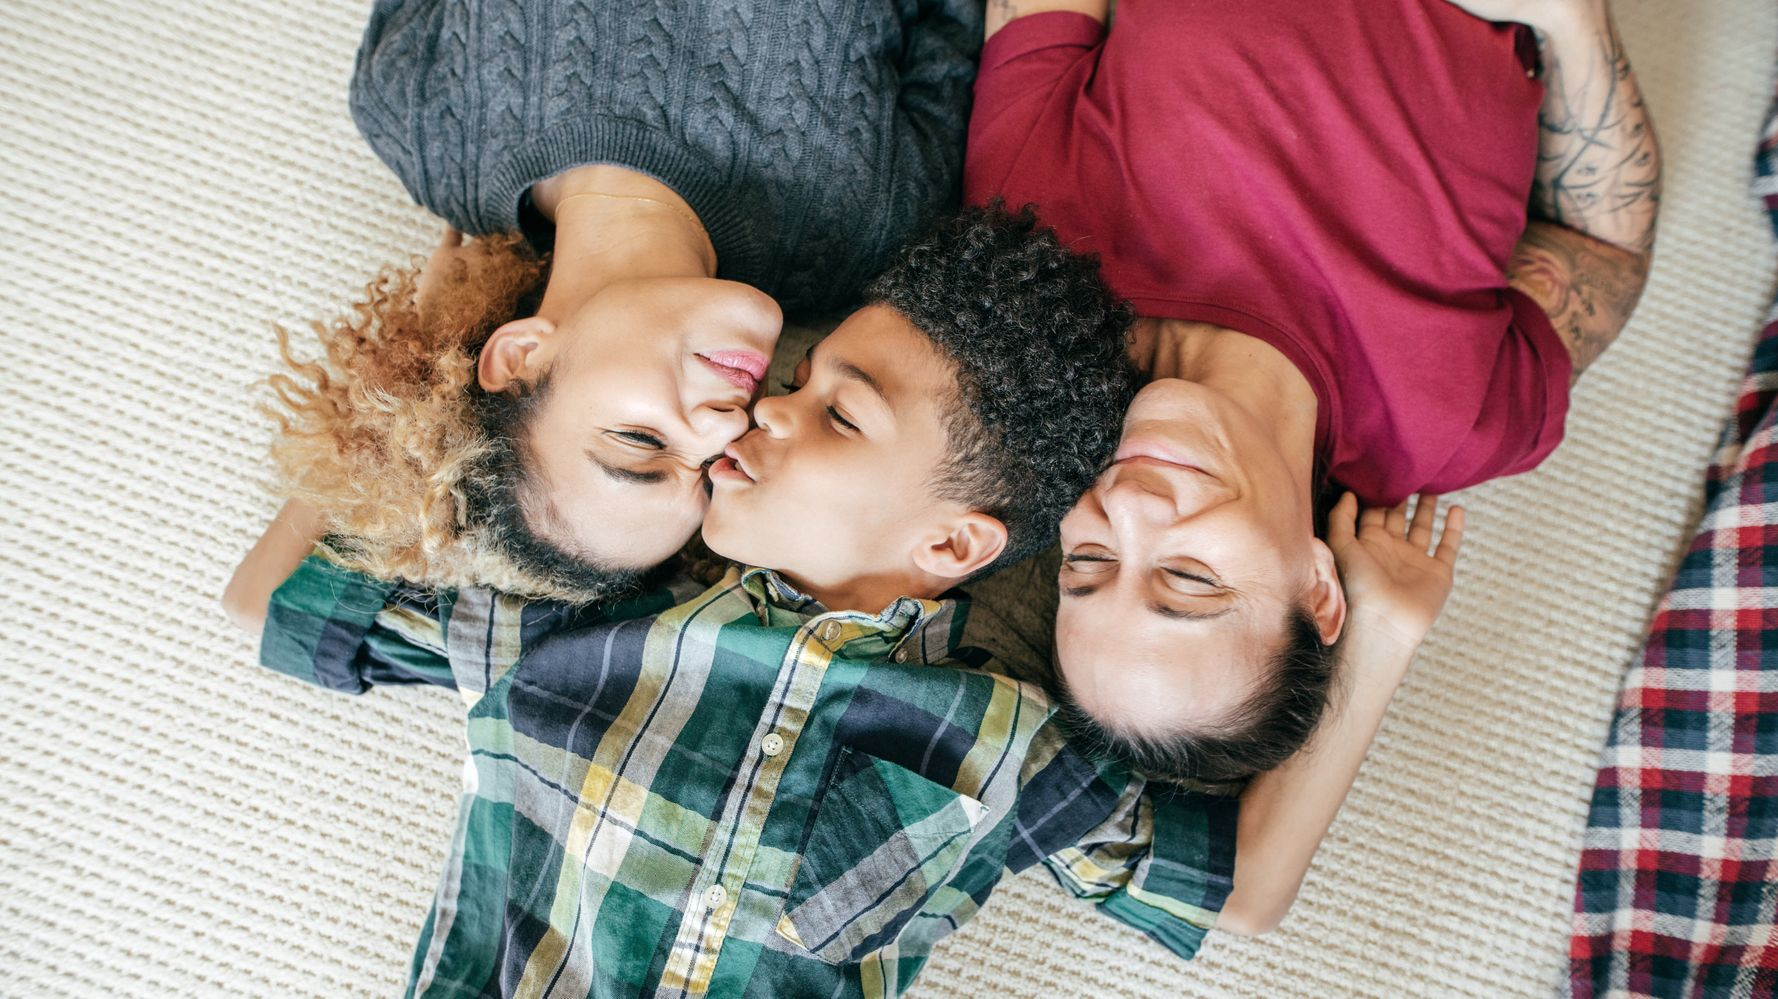 Celebrate LGBTQ+ Lives With Your Kids This Valentine's Day